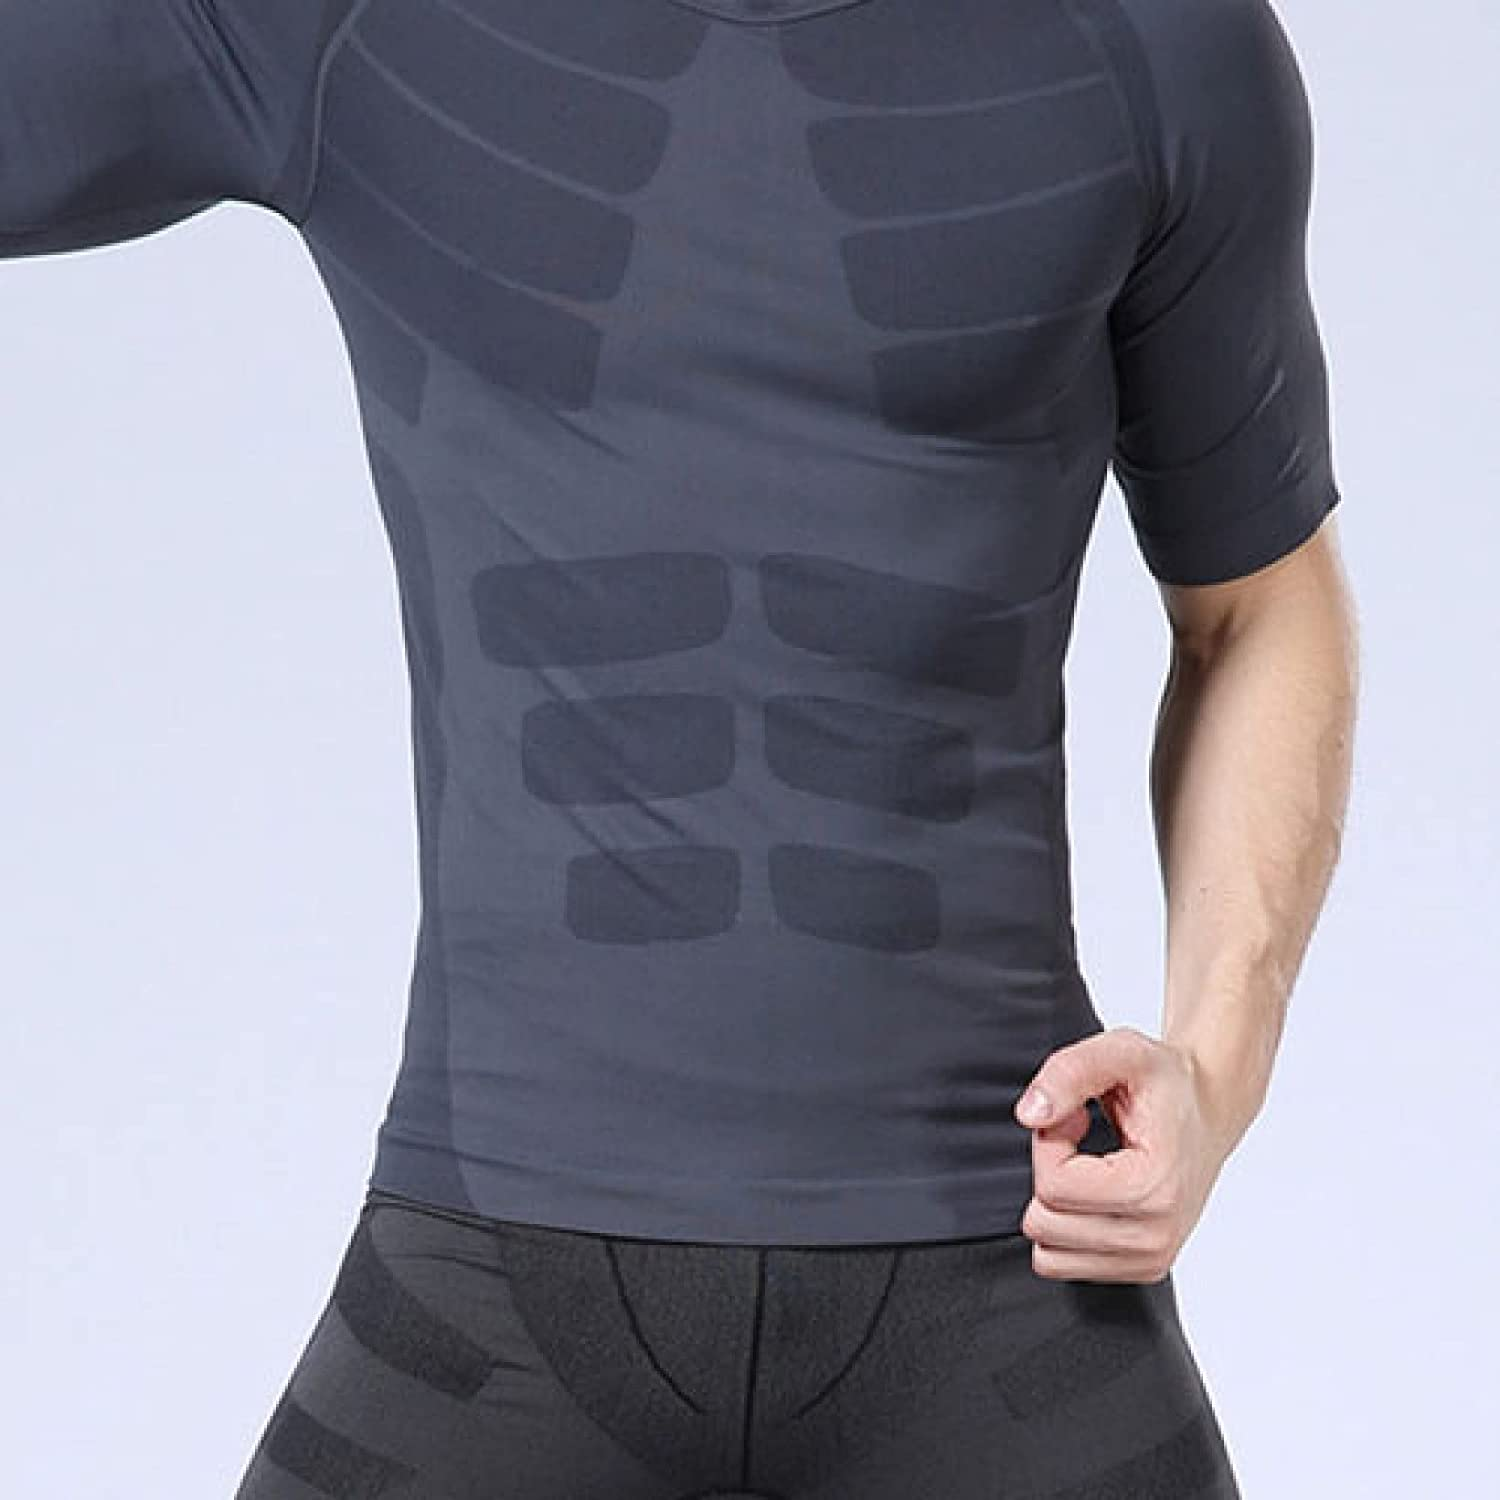 ChyJoey Mens Seamless Shapewear Tank Top Slimming Compression Shirts Weight Loss Waist Trimmer Body Shaper Shirt for Gym